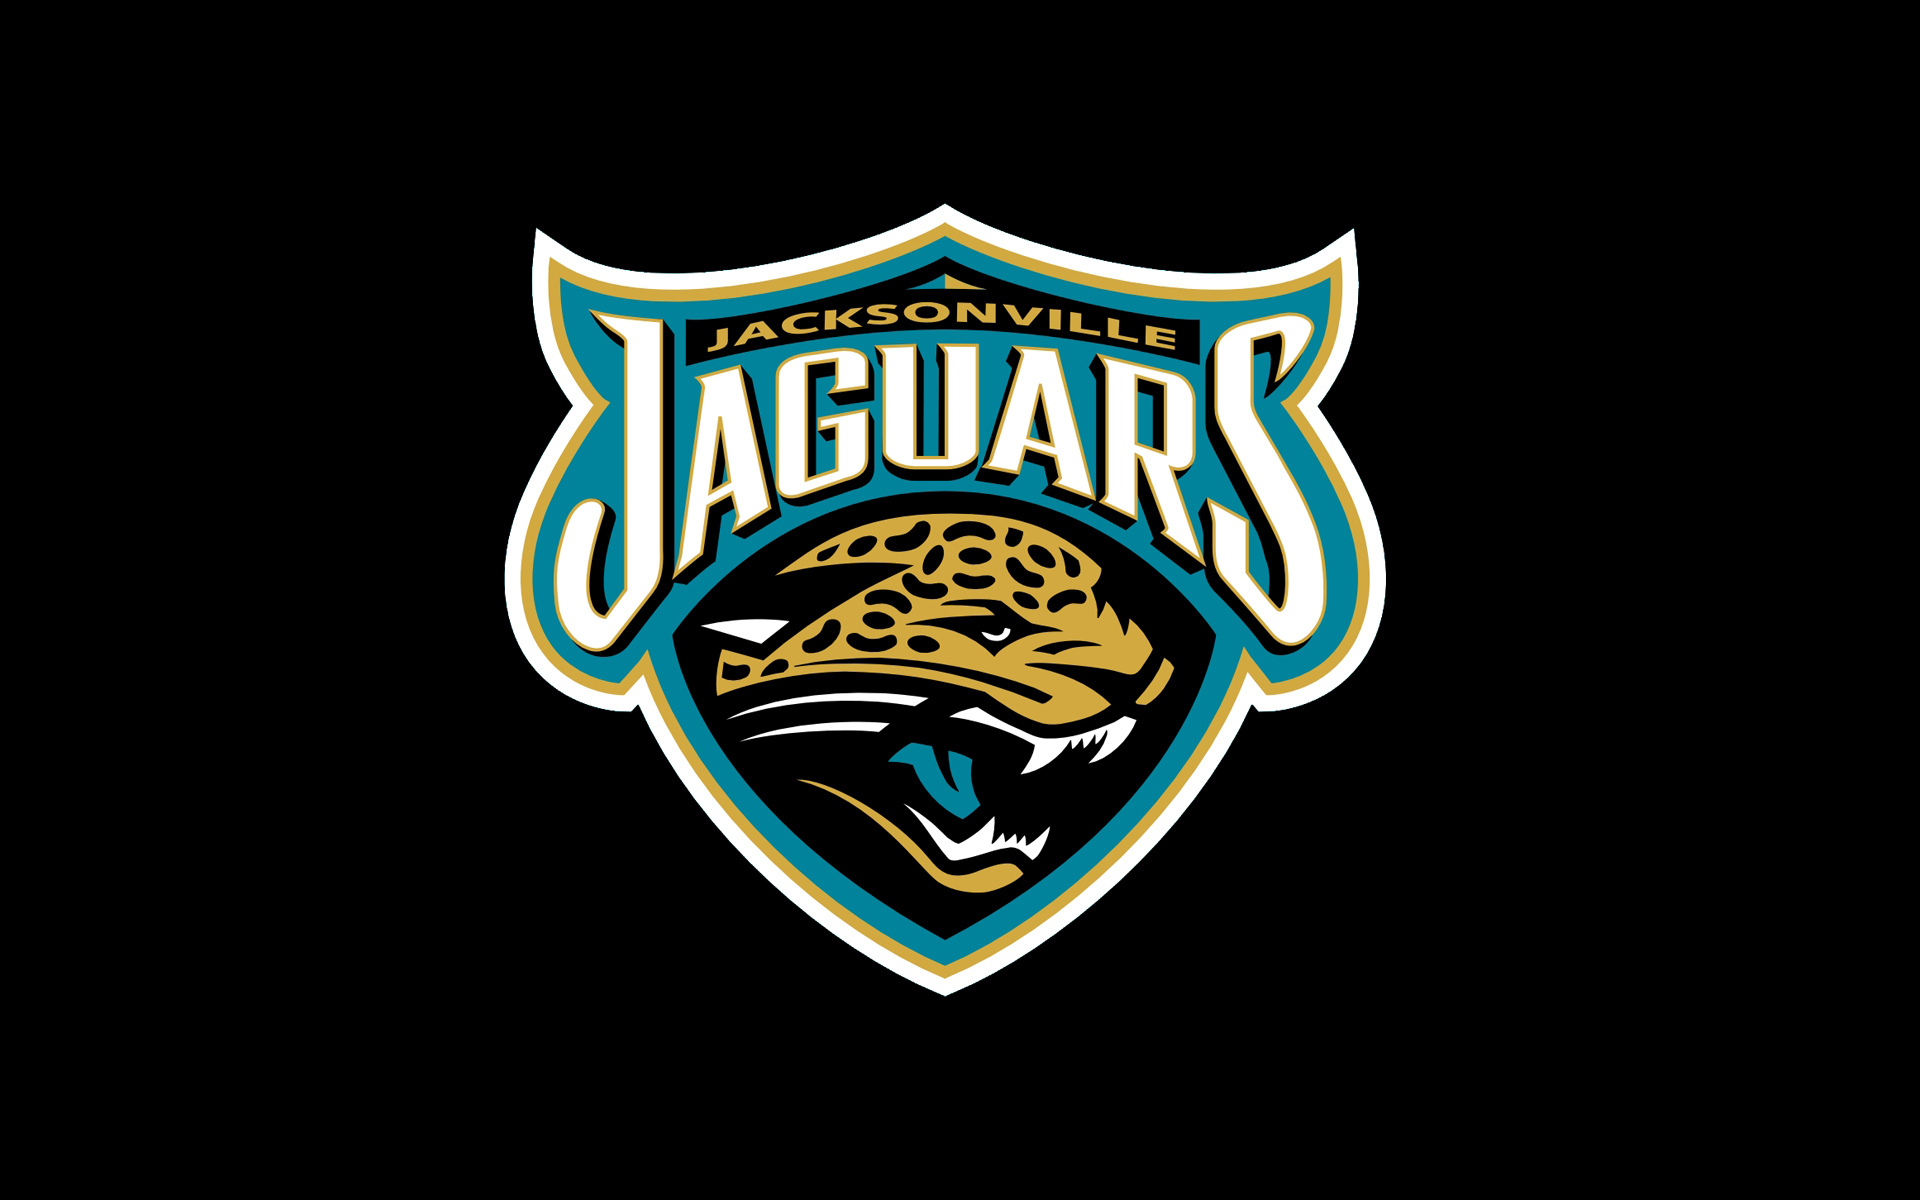 jacksonville jaguars hd wallpaper 52940